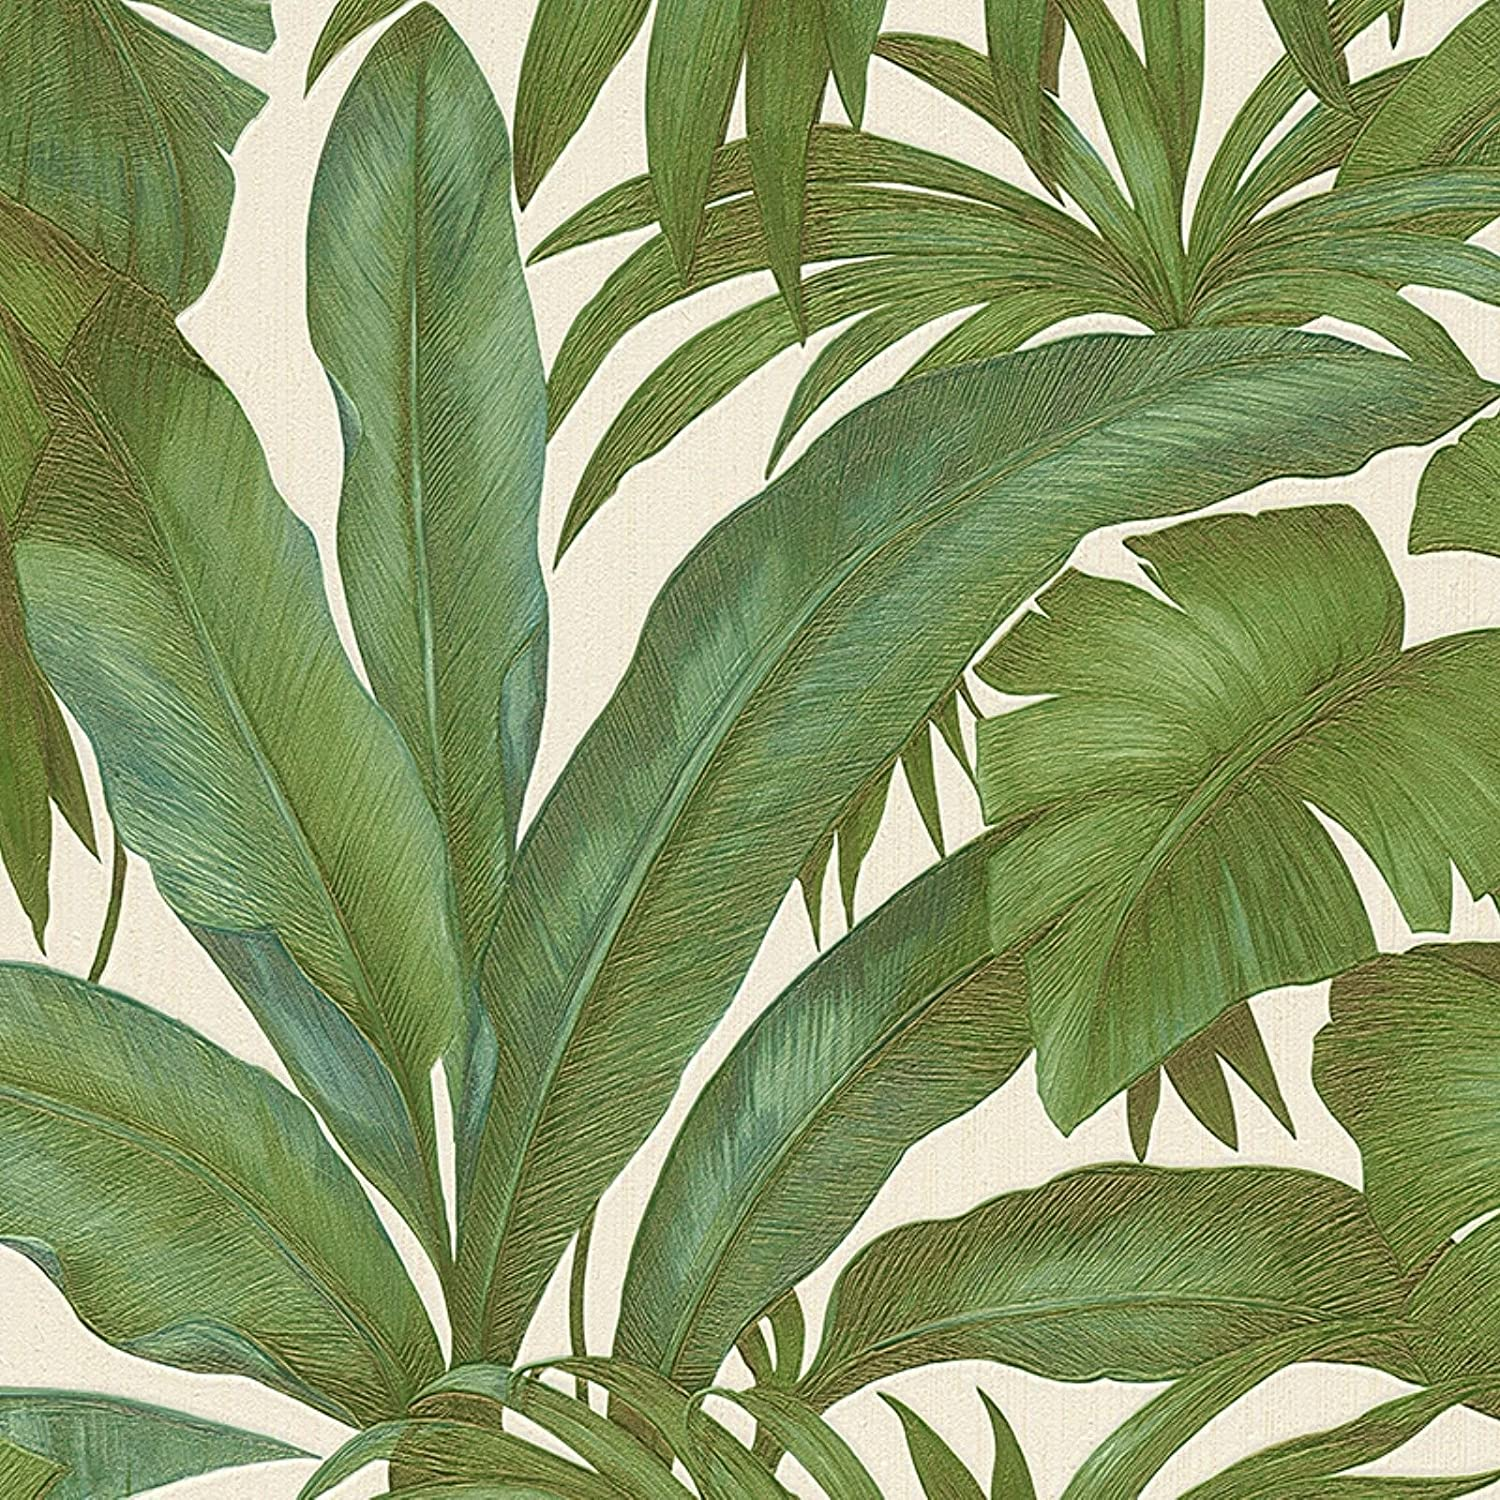 Versace Green Palm Leaf Wallpaper Extra Wide Paste The Wall AS Creation